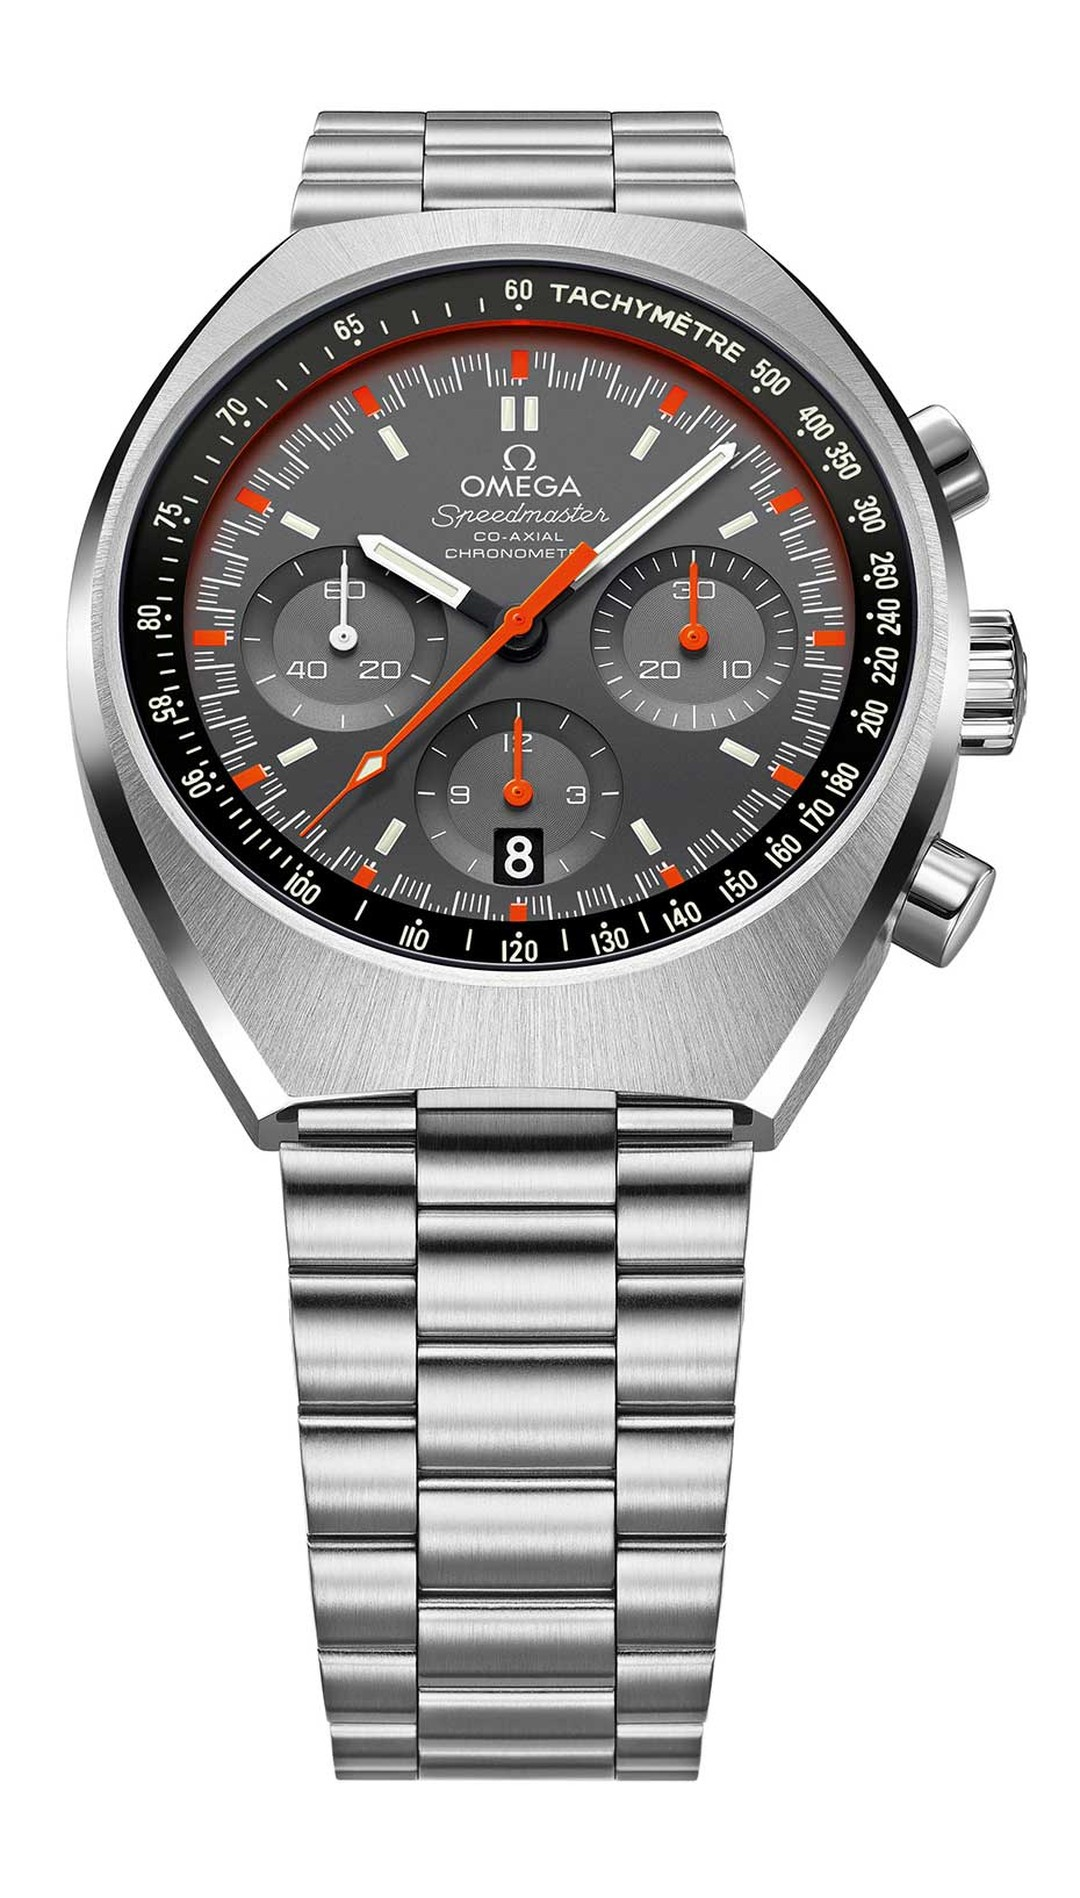 The late 60s and 70s are now considered 'vintage years' for watch design, and Omega's new Speedmaster Mark II captures the era perfectly, with its elongated barrel-shaped stainless steel case and fluorescent orange chronograph seconds hand with matching m